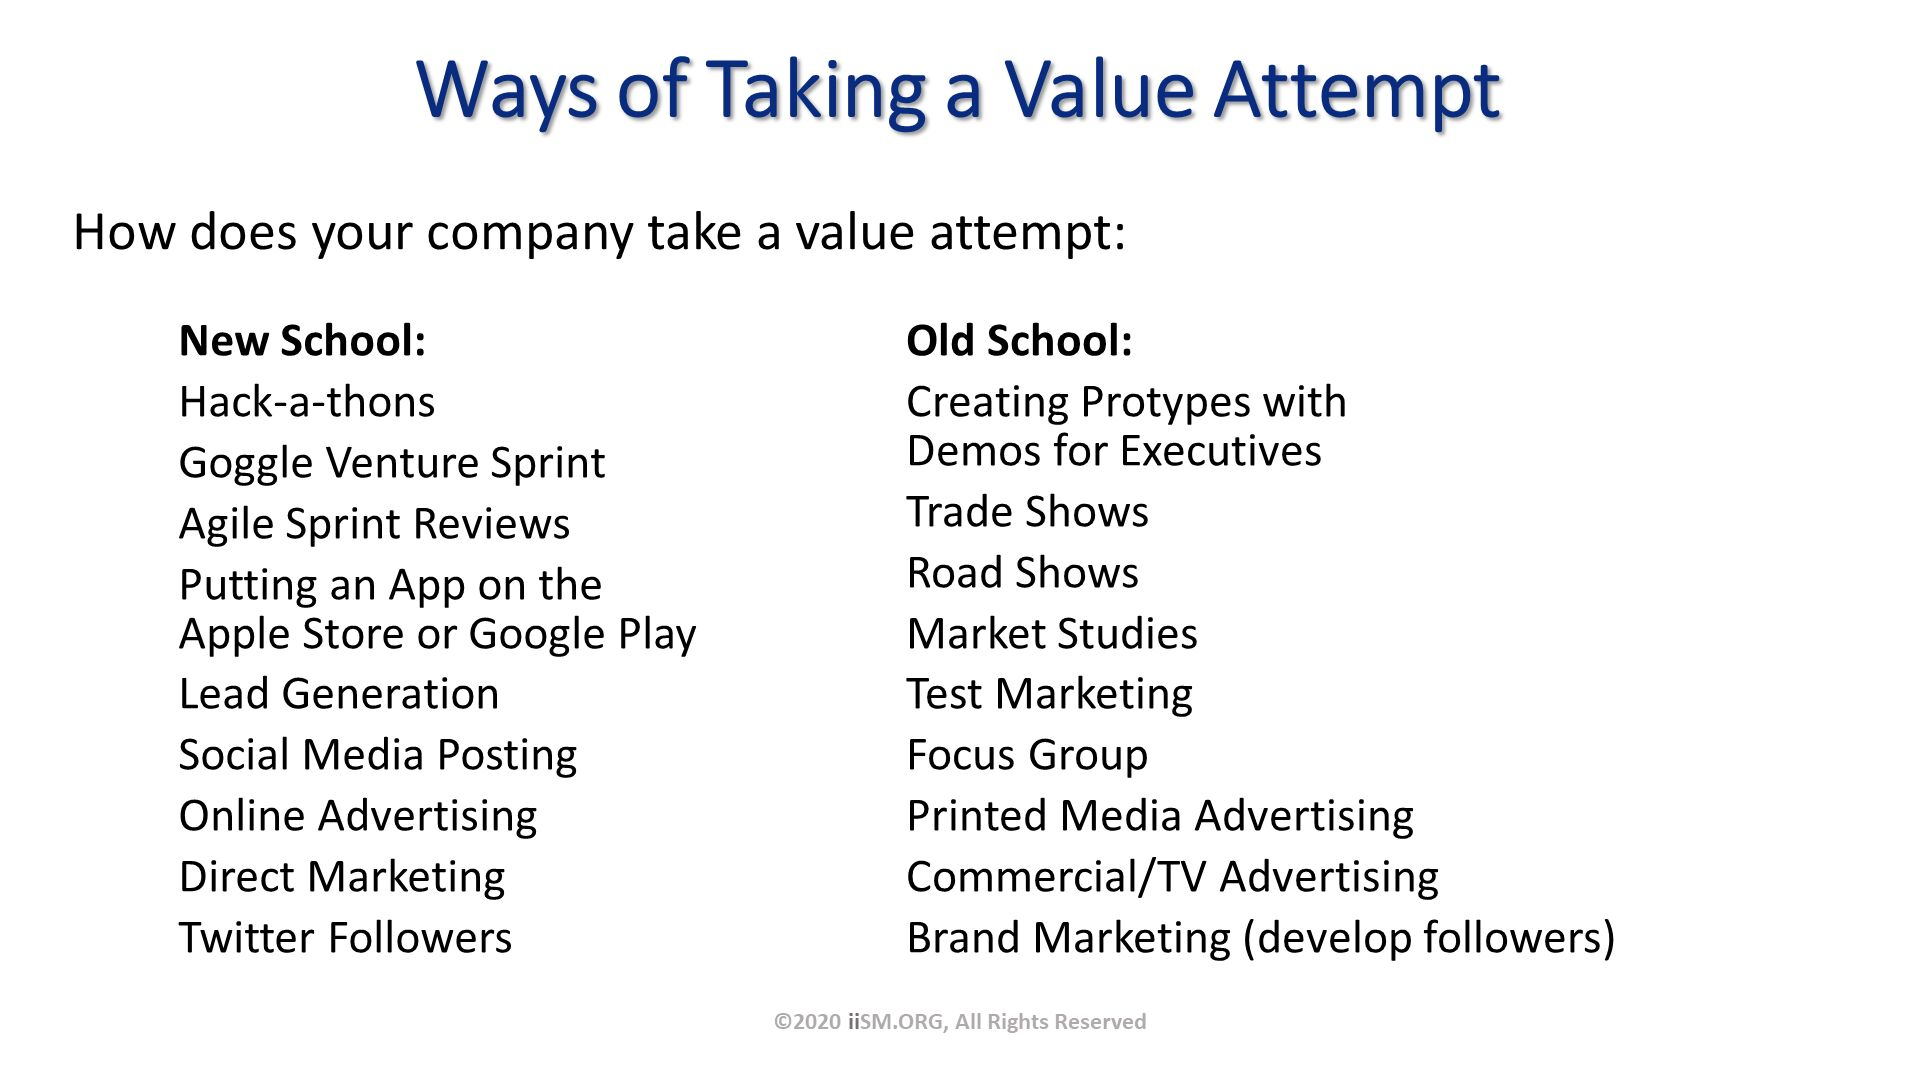 Ways of Taking a Value Attempt. New School: Hack-a-thons Goggle Venture Sprint Agile Sprint Reviews Putting an App on the Apple Store or Google Play Lead Generation Social Media Posting Online Advertising Direct Marketing  Twitter Followers  . ©2020 iiSM.ORG, All Rights Reserved. How does your company take a value attempt:. Old School: Creating Protypes with Demos for Executives Trade Shows Road Shows Market Studies Test Marketing Focus Group Printed Media Advertising Commercial/TV Advertising Brand Marketing (develop followers) .